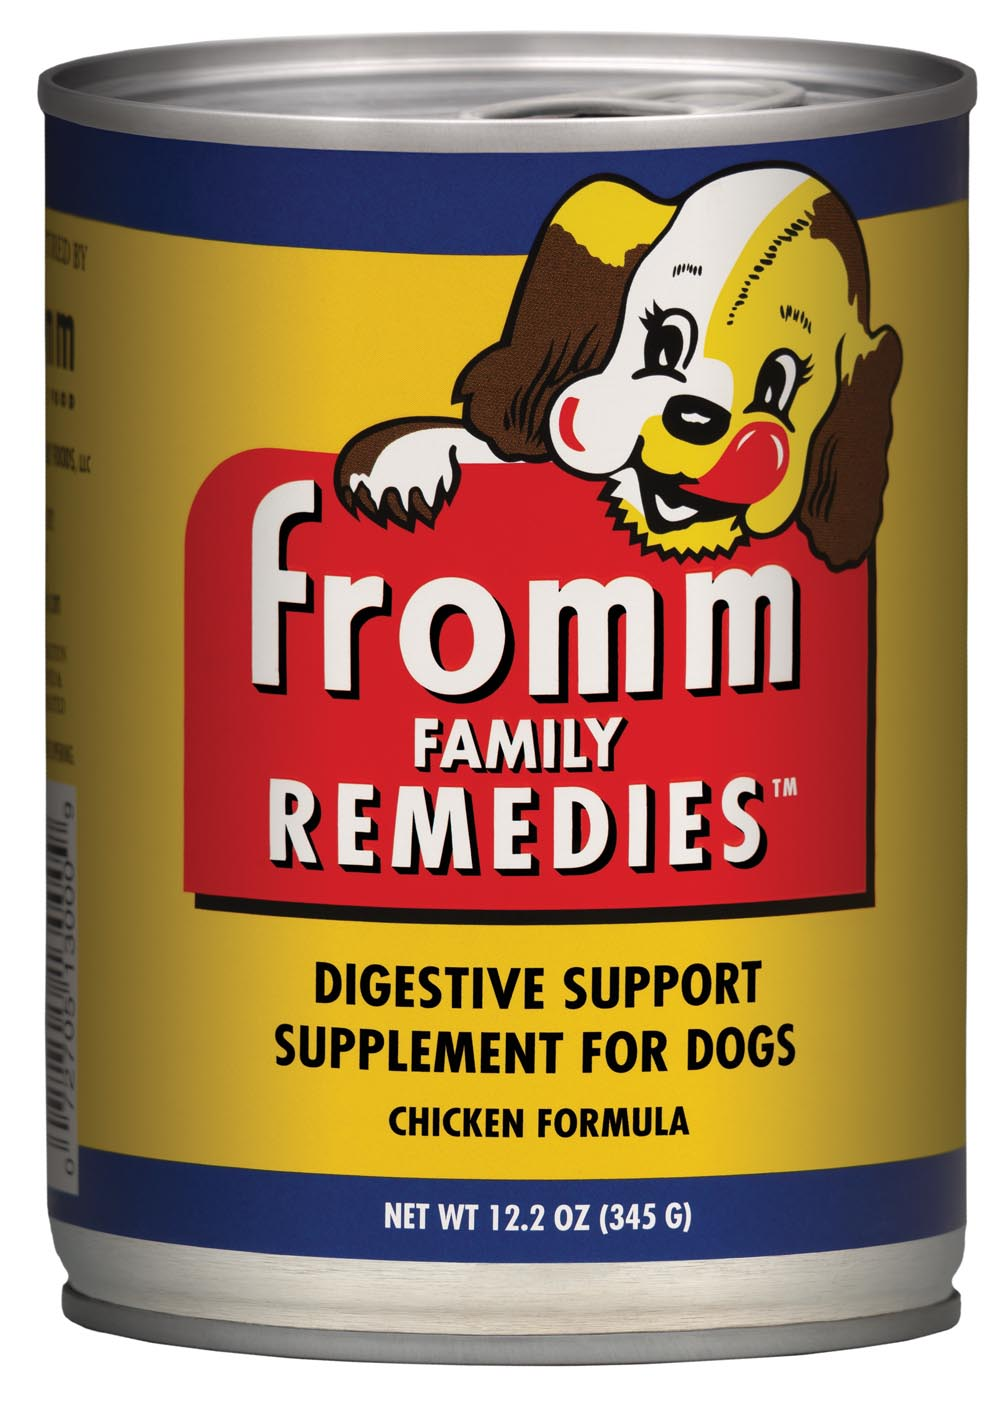 Fromm Family Remedies Chicken Recipe Digestive Support Canned Dog Food, 12.2-oz